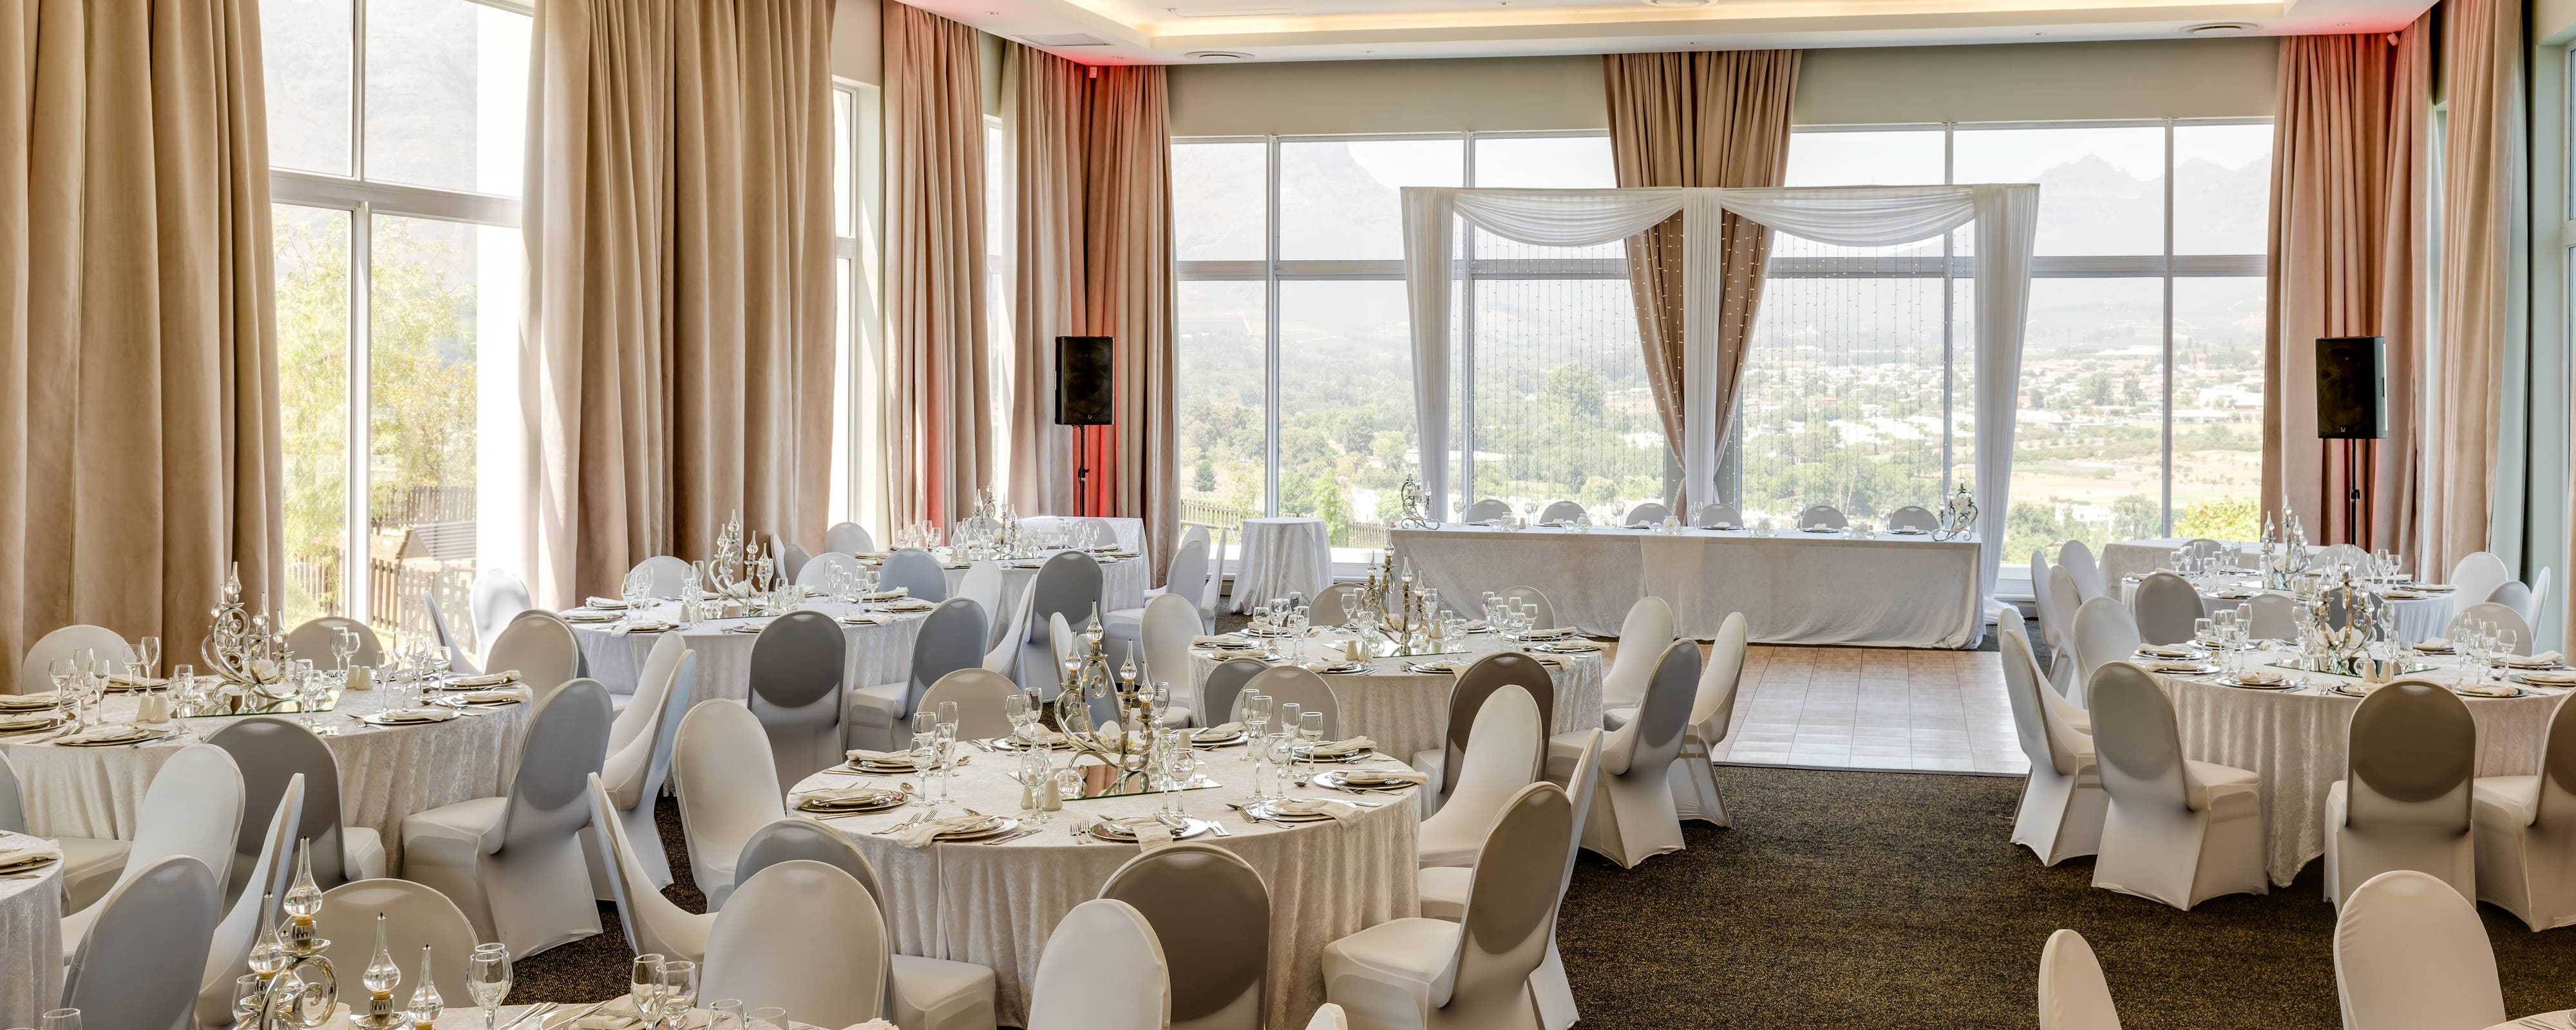 Change Decor Function Room For Wedding